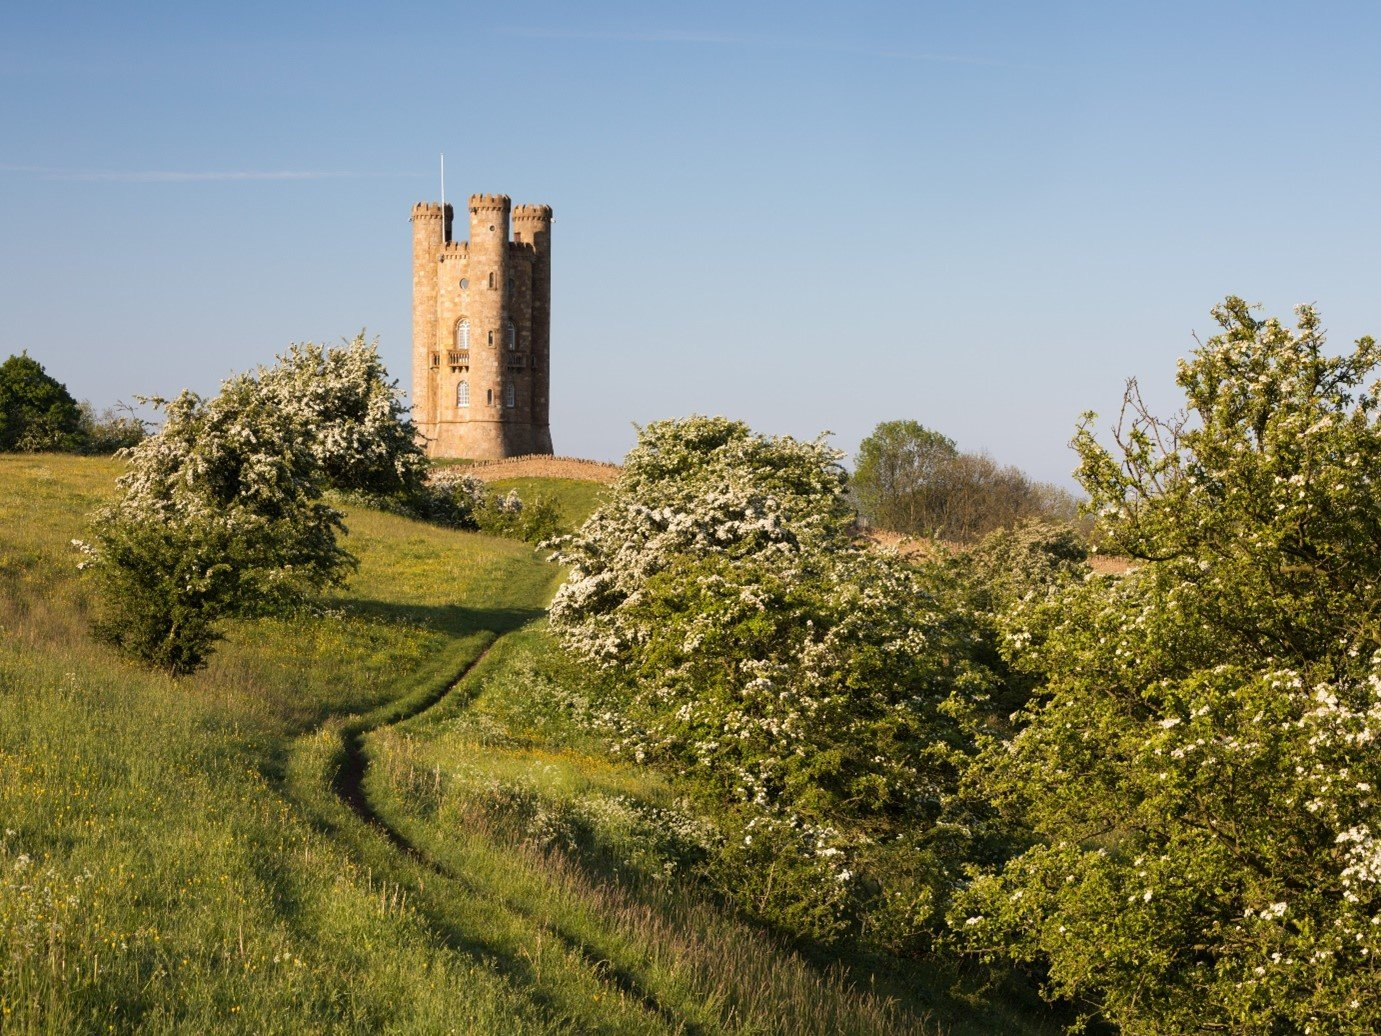 Historic tower cotswold england broadway tower hillside